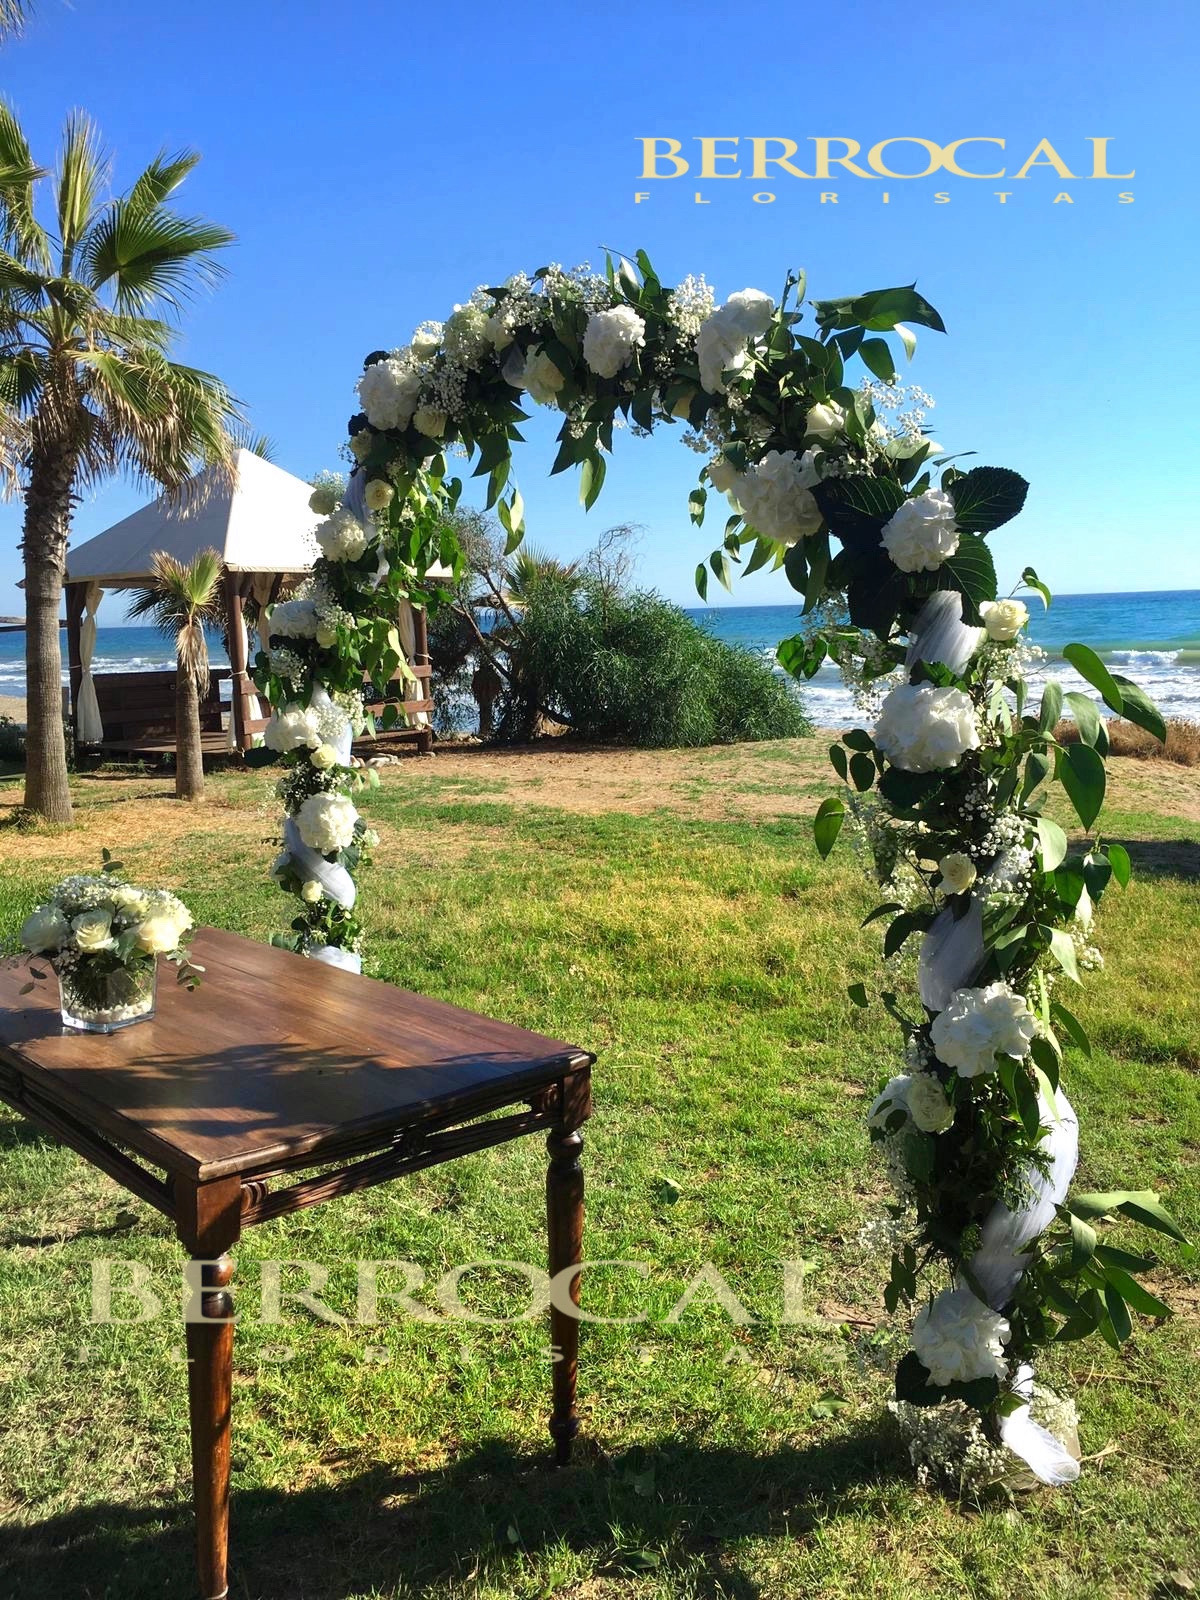 White arche, with greens, flowers and white tulle